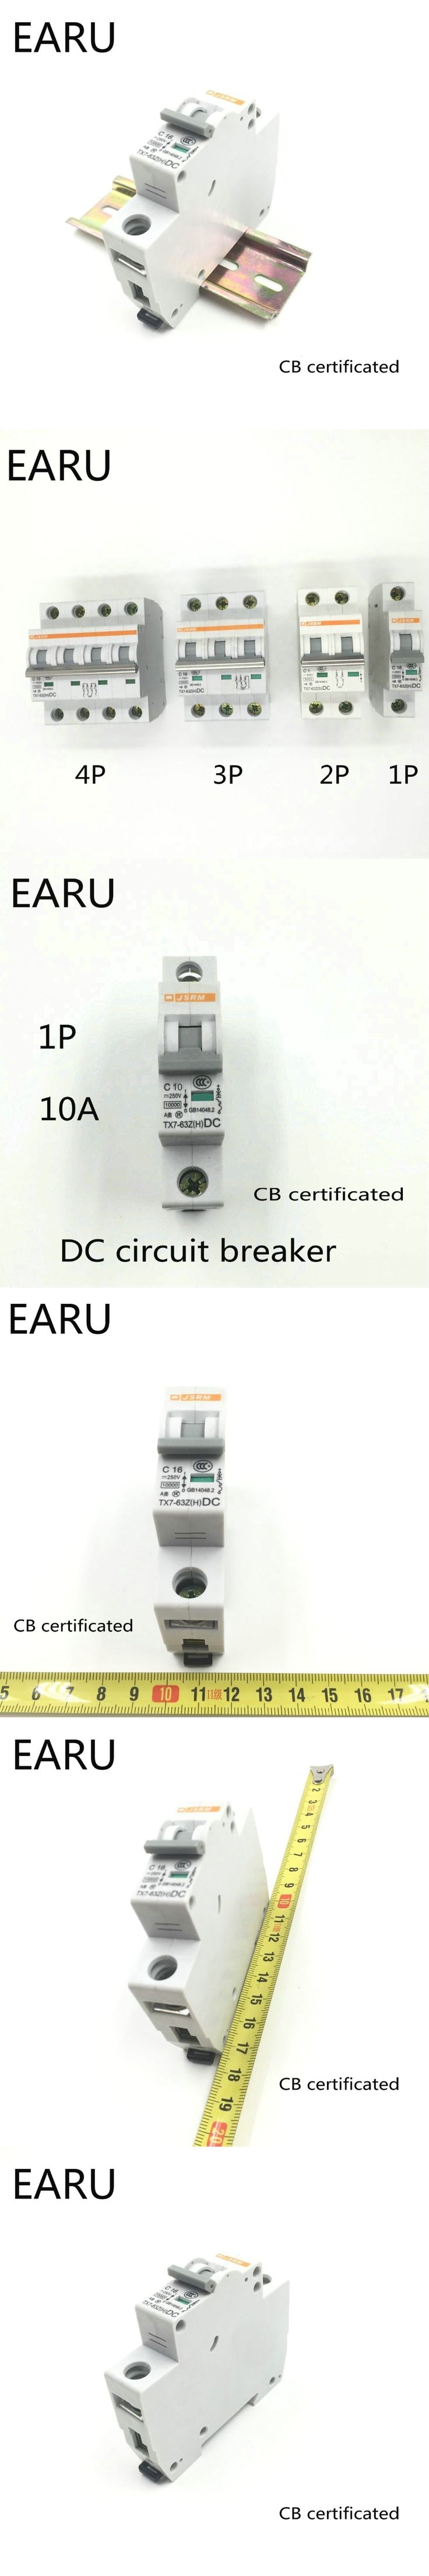 1P 10A DC 250V DC Circuit Breaker MCB for PV Solar Energy Photovoltaic System Battery C curve CB Certificated Din Rail Mounted